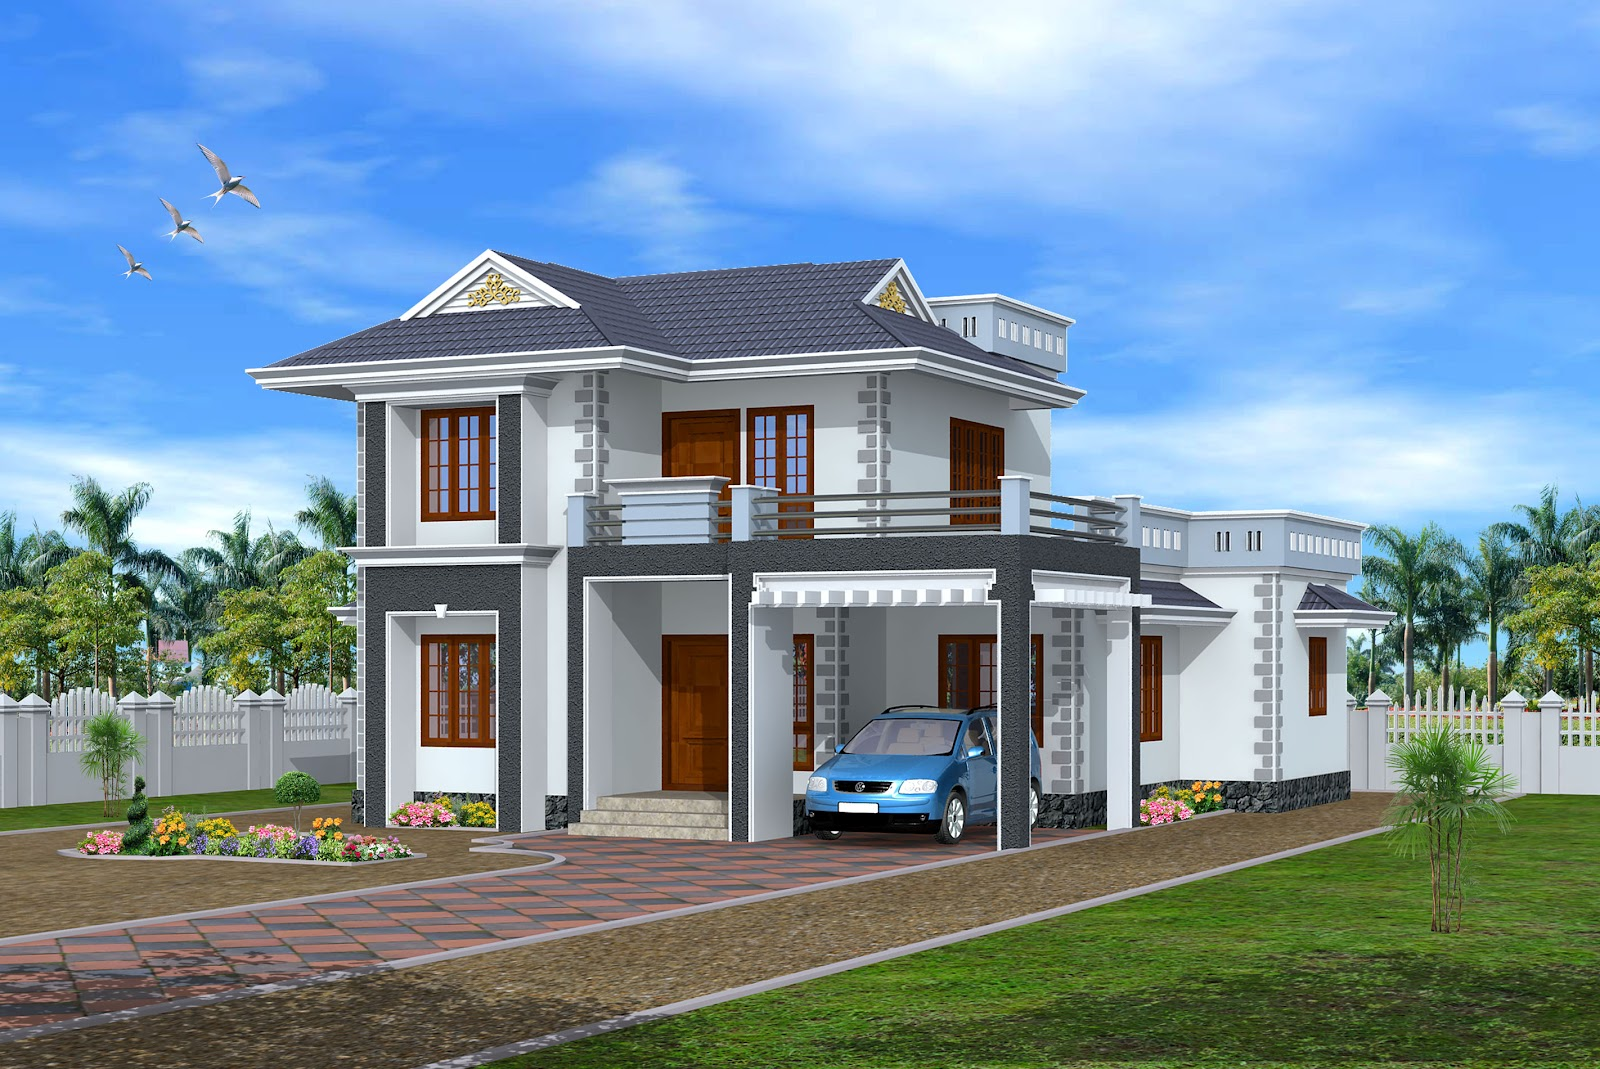 New home designs latest modern homes exterior designs views for Latest house design images